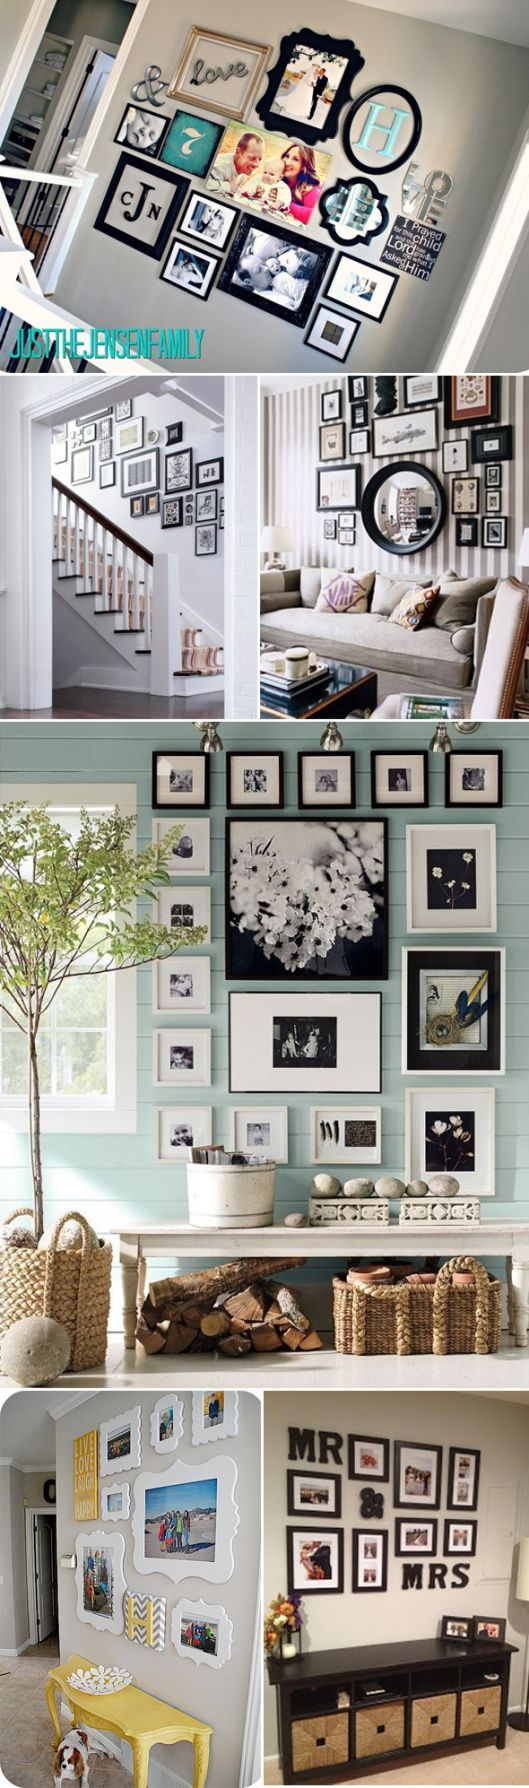 Wall arrangement ideas.                                                                                                                                                      More